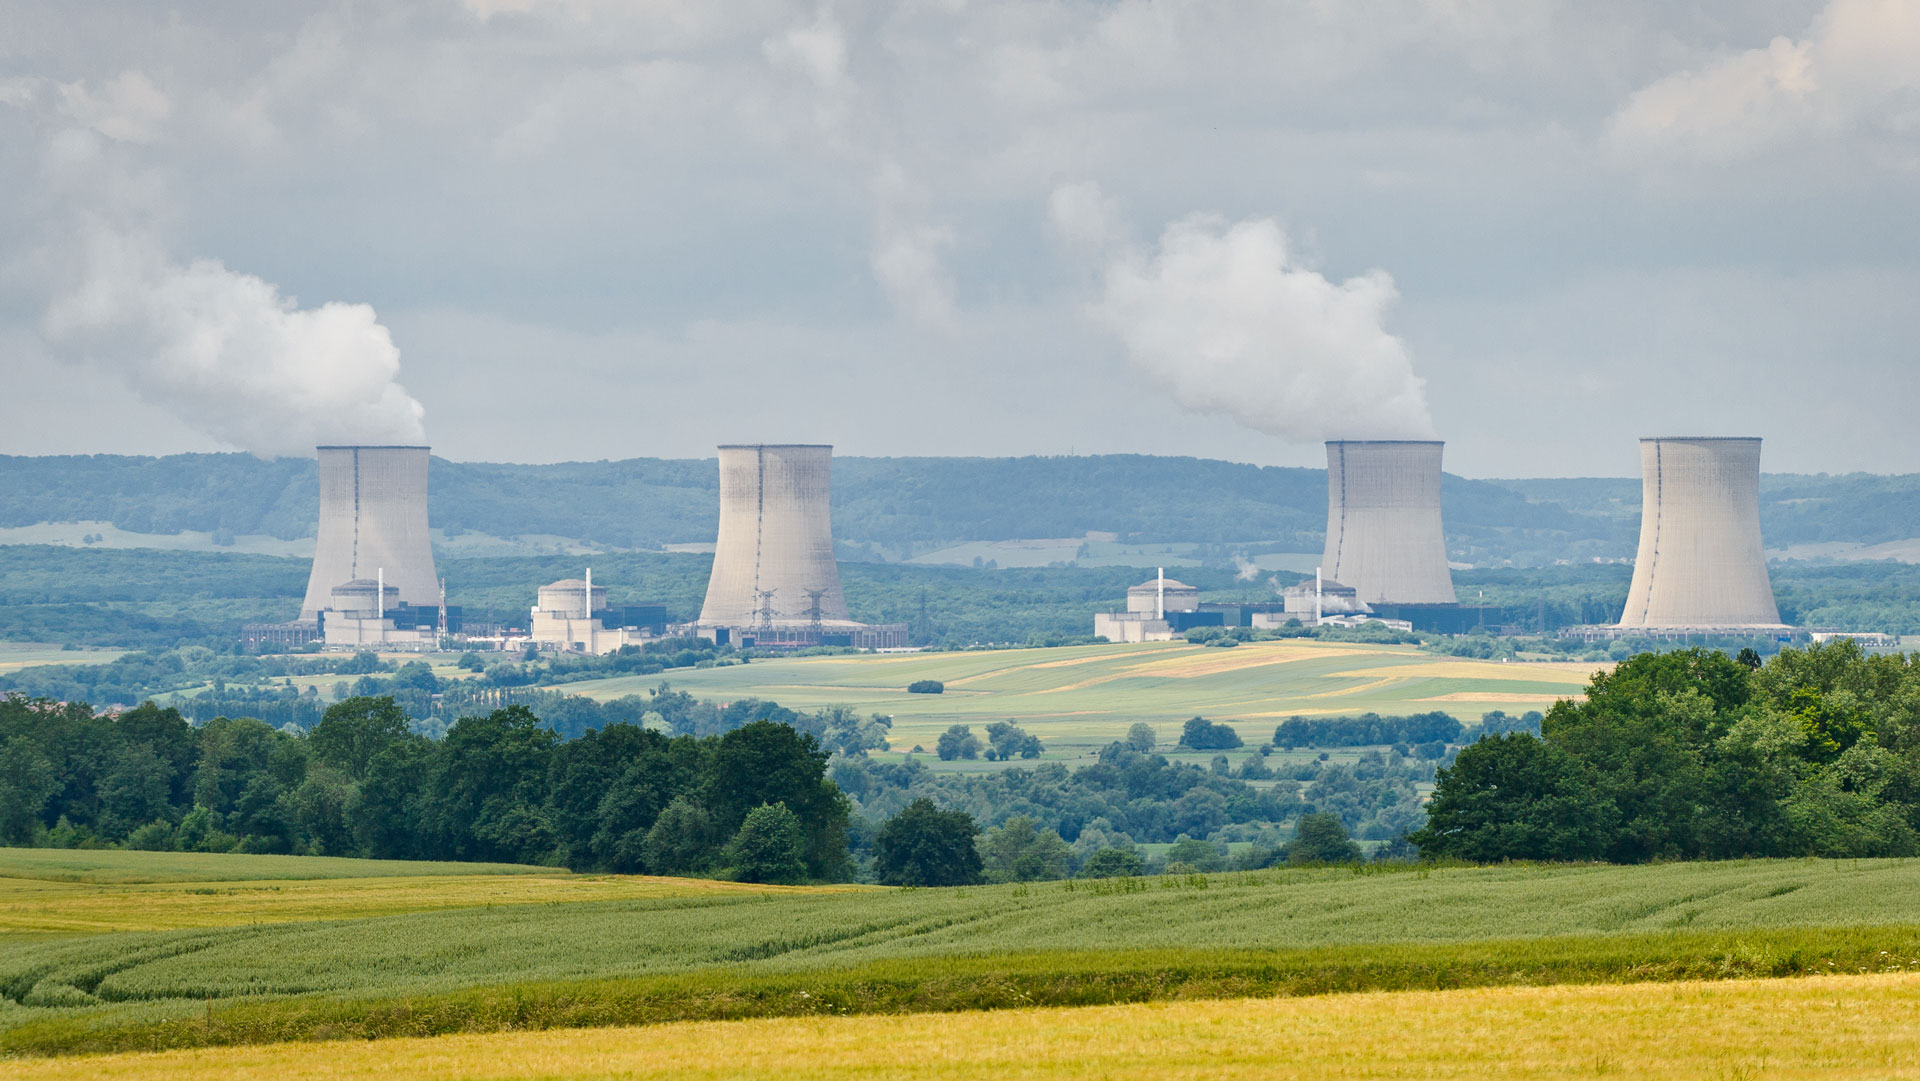 Modelling radioactive fallout in a crisis situation